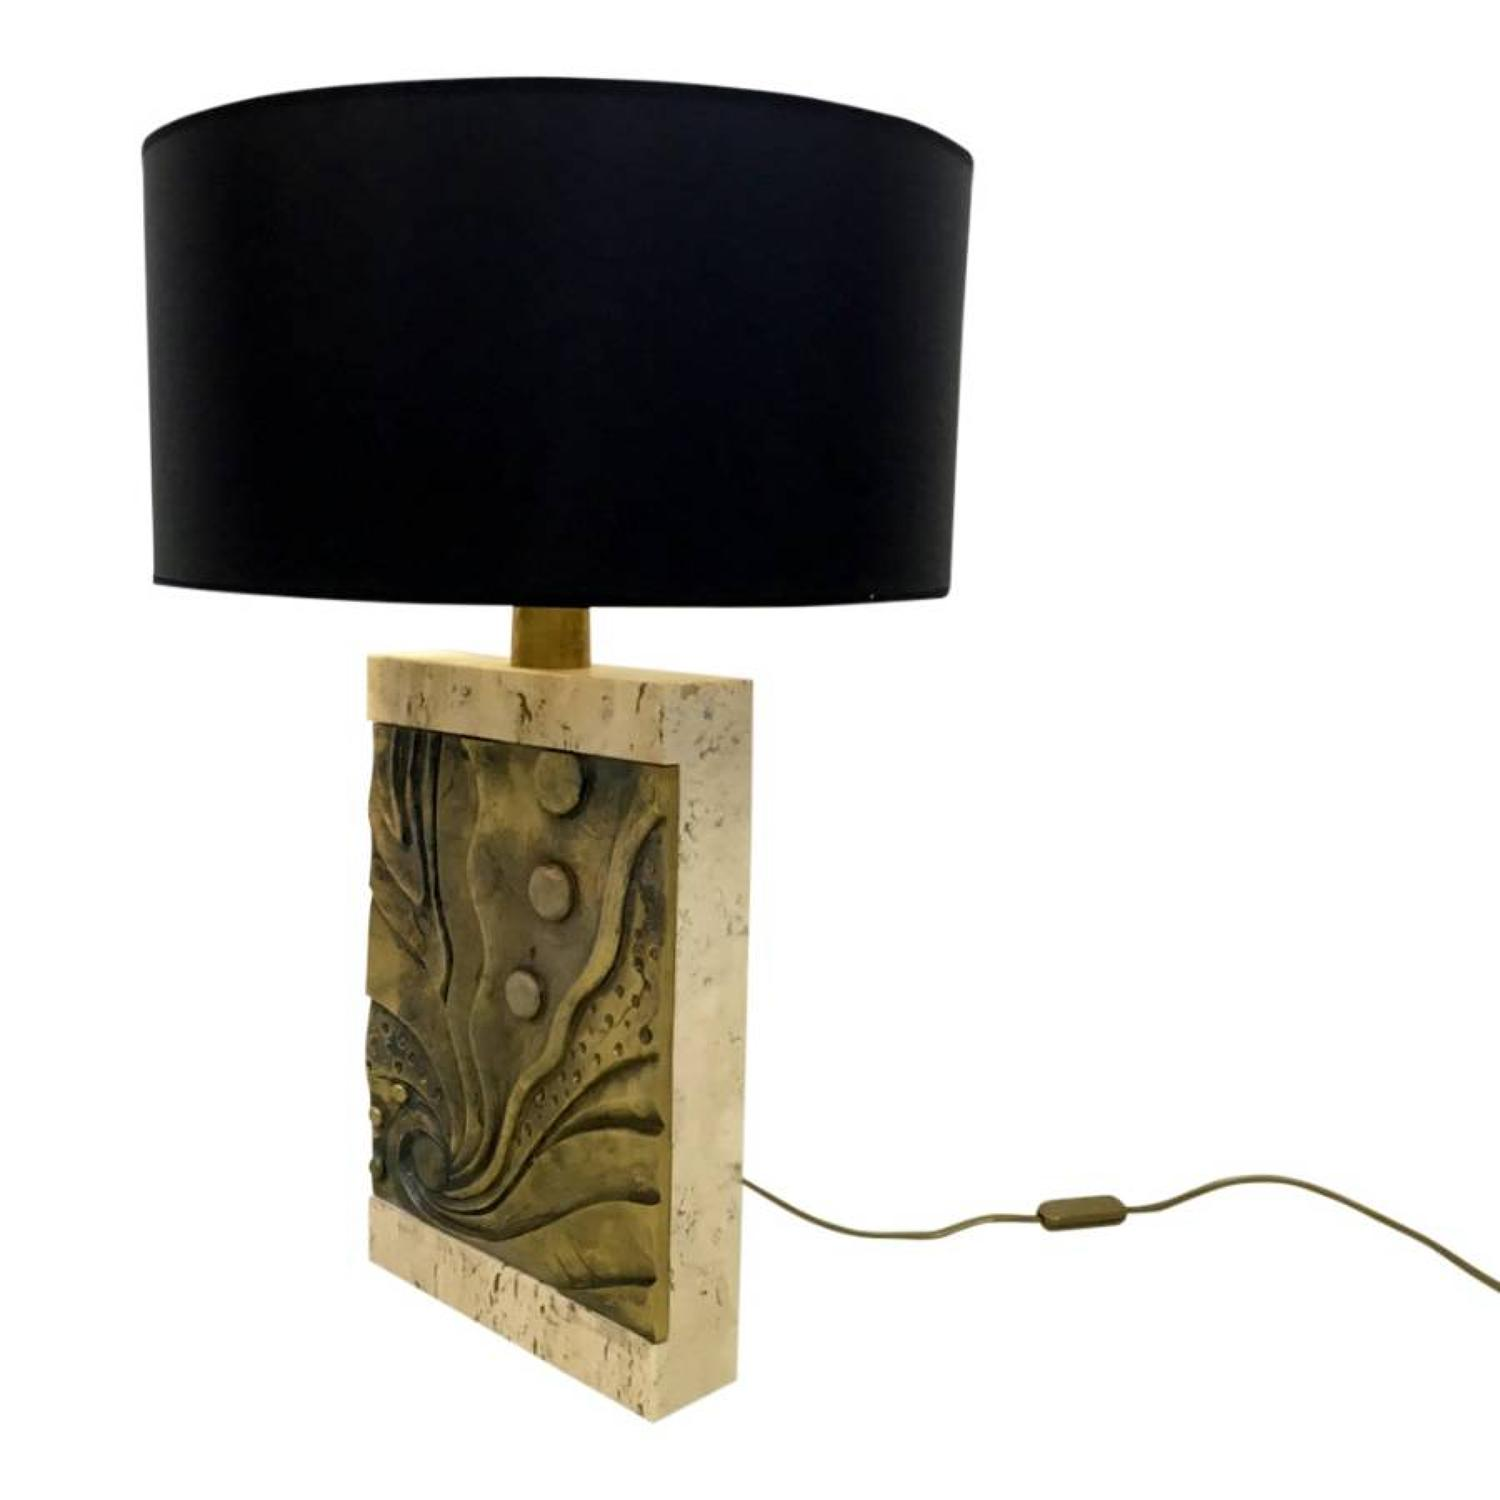 An Italian travertine and bronze table lamp